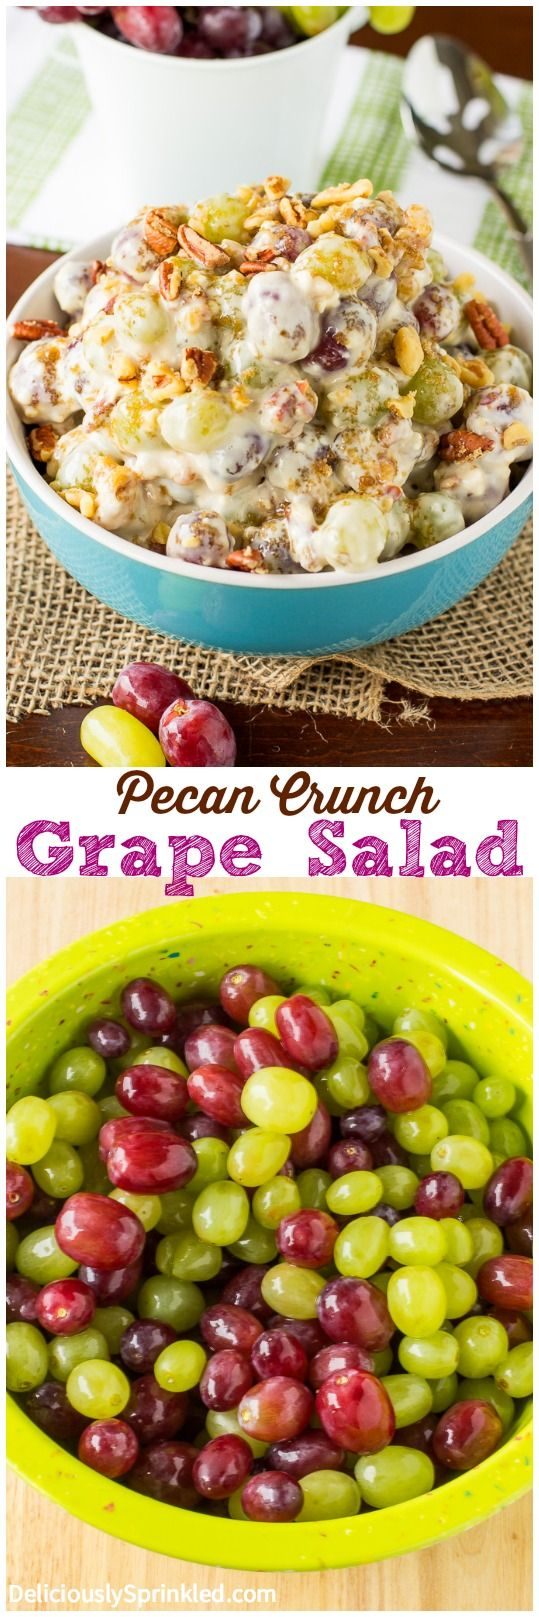 A recipe for Pecan Crunch Grape Salad. A cool, crisp, creamy and sweet Pecan Crunch Grape Salad, perfect side dish recipe.